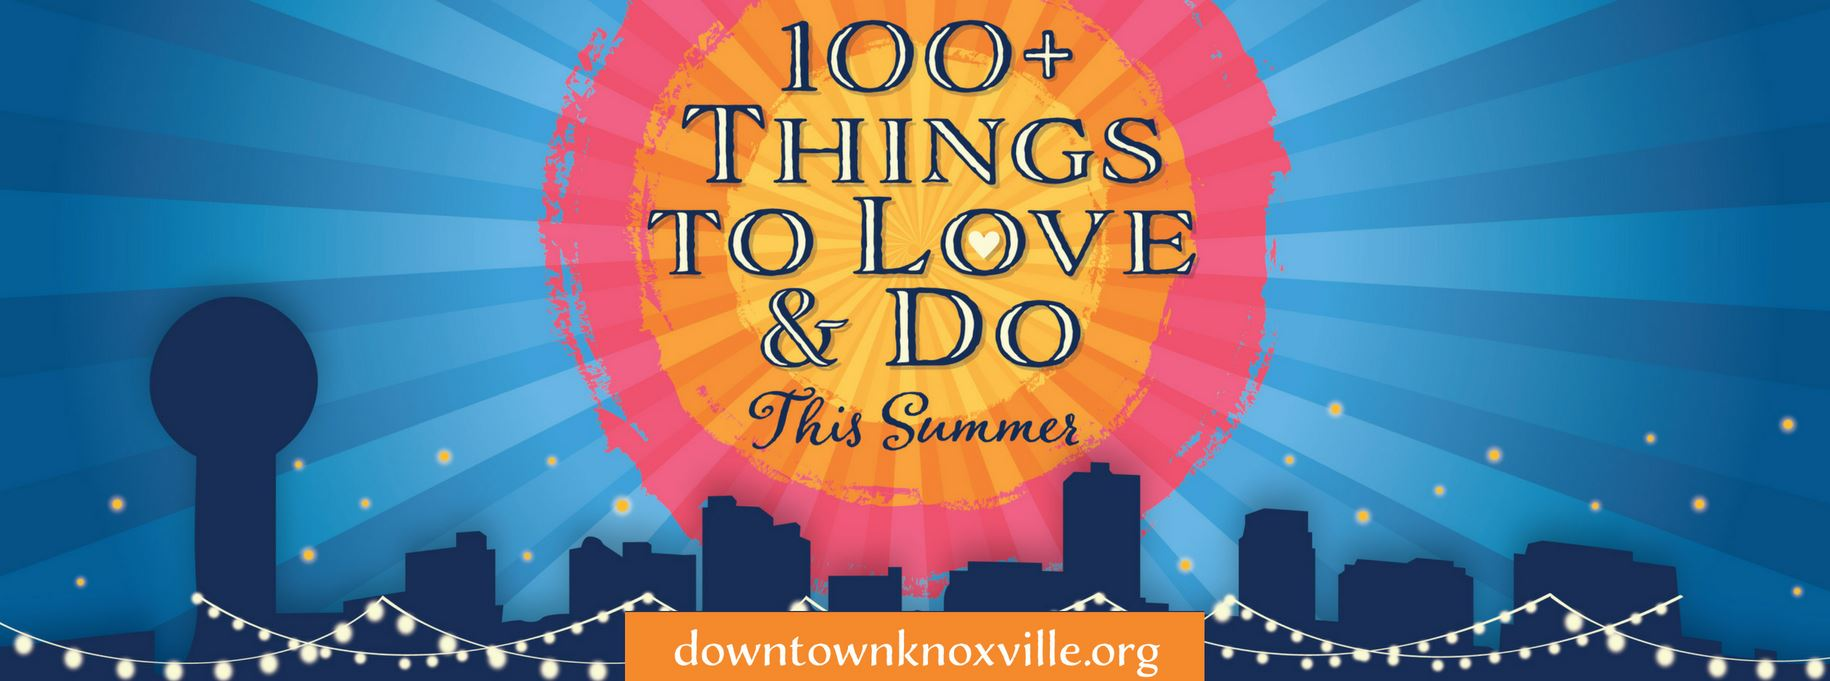 100 things to Love and Do this Summer